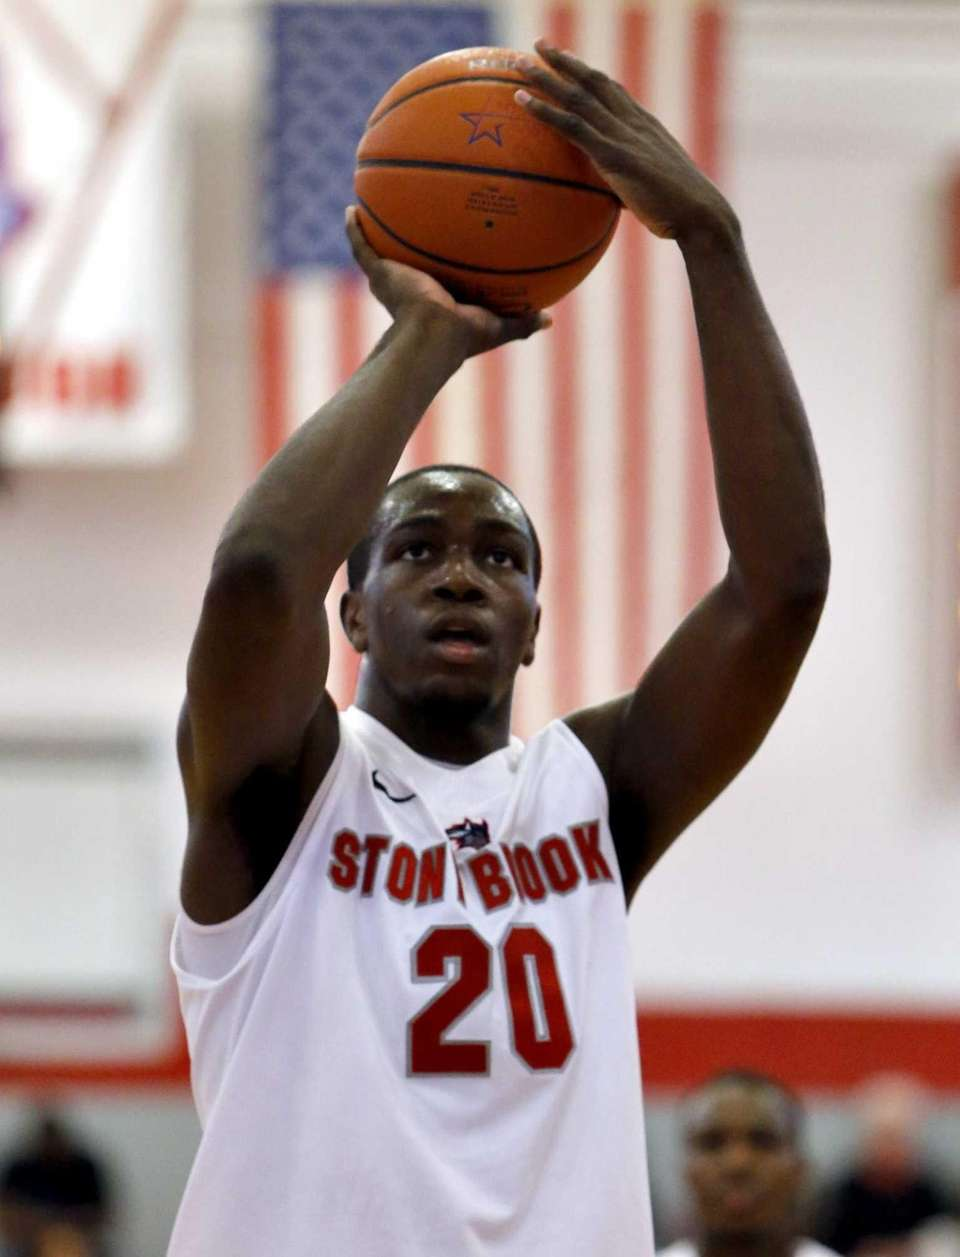 Stony Brook's Jameel Warney shoots a free throw